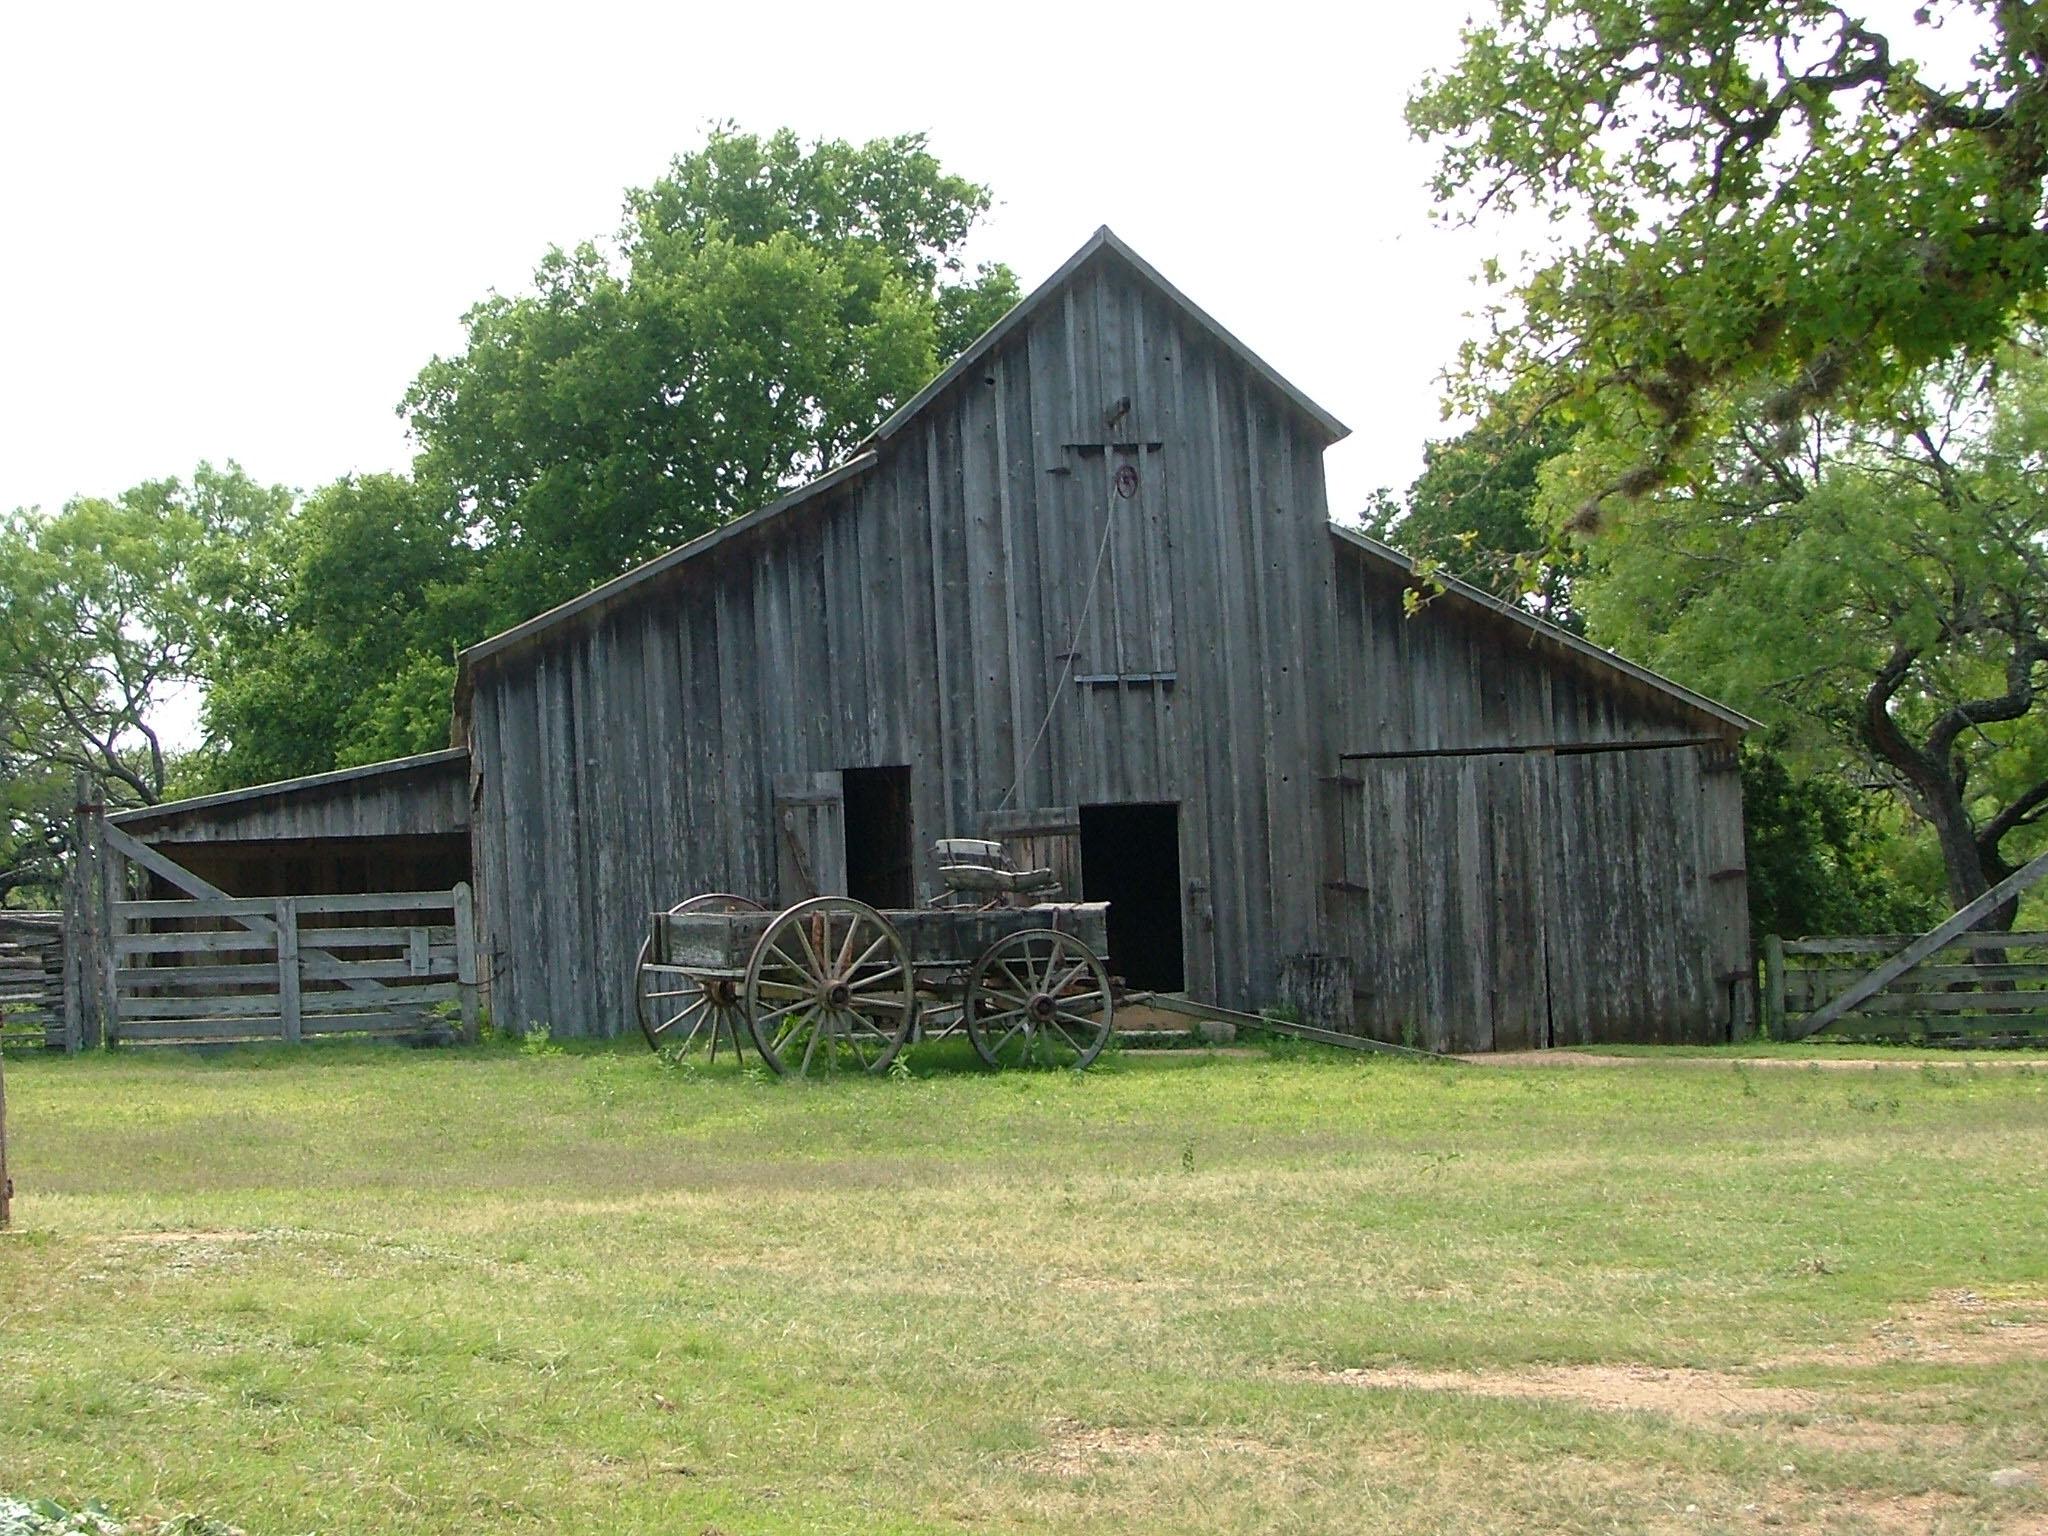 Hill country barn and wagon rustic images foundmyself for Country barn home plans